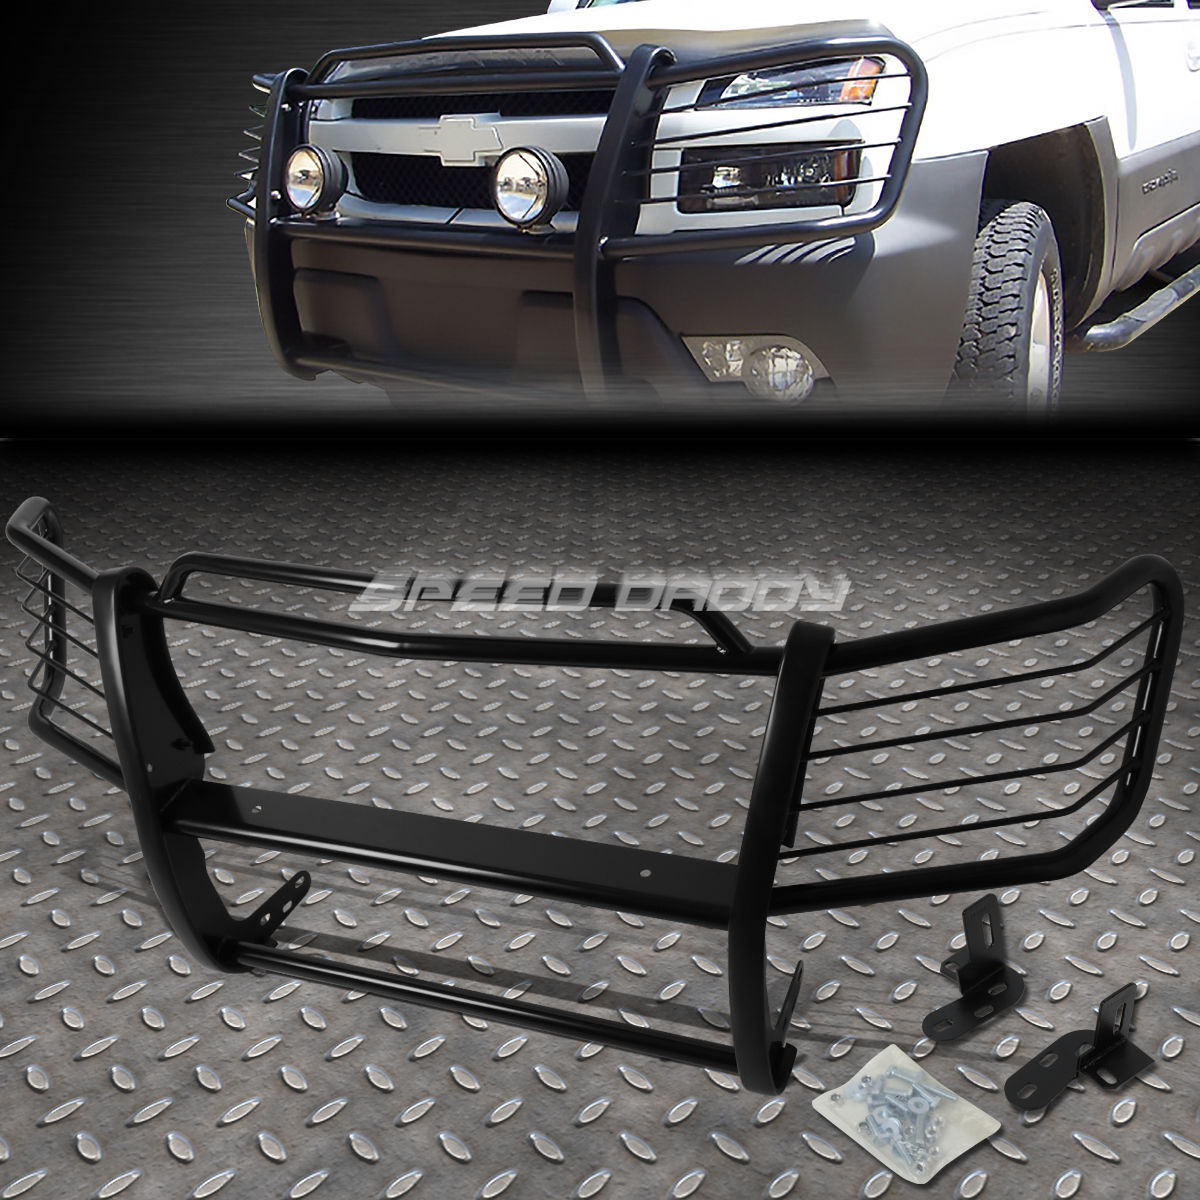 グリル 黒塗装されたマイルストーンフロントグリルガードフレーク用02-06 AVALANCHE W / CLADDING BLACK COATED MILD STEEL FRONT GRILL GUARD FLAME FOR 02-06 AVALANCHE W/CLADDING